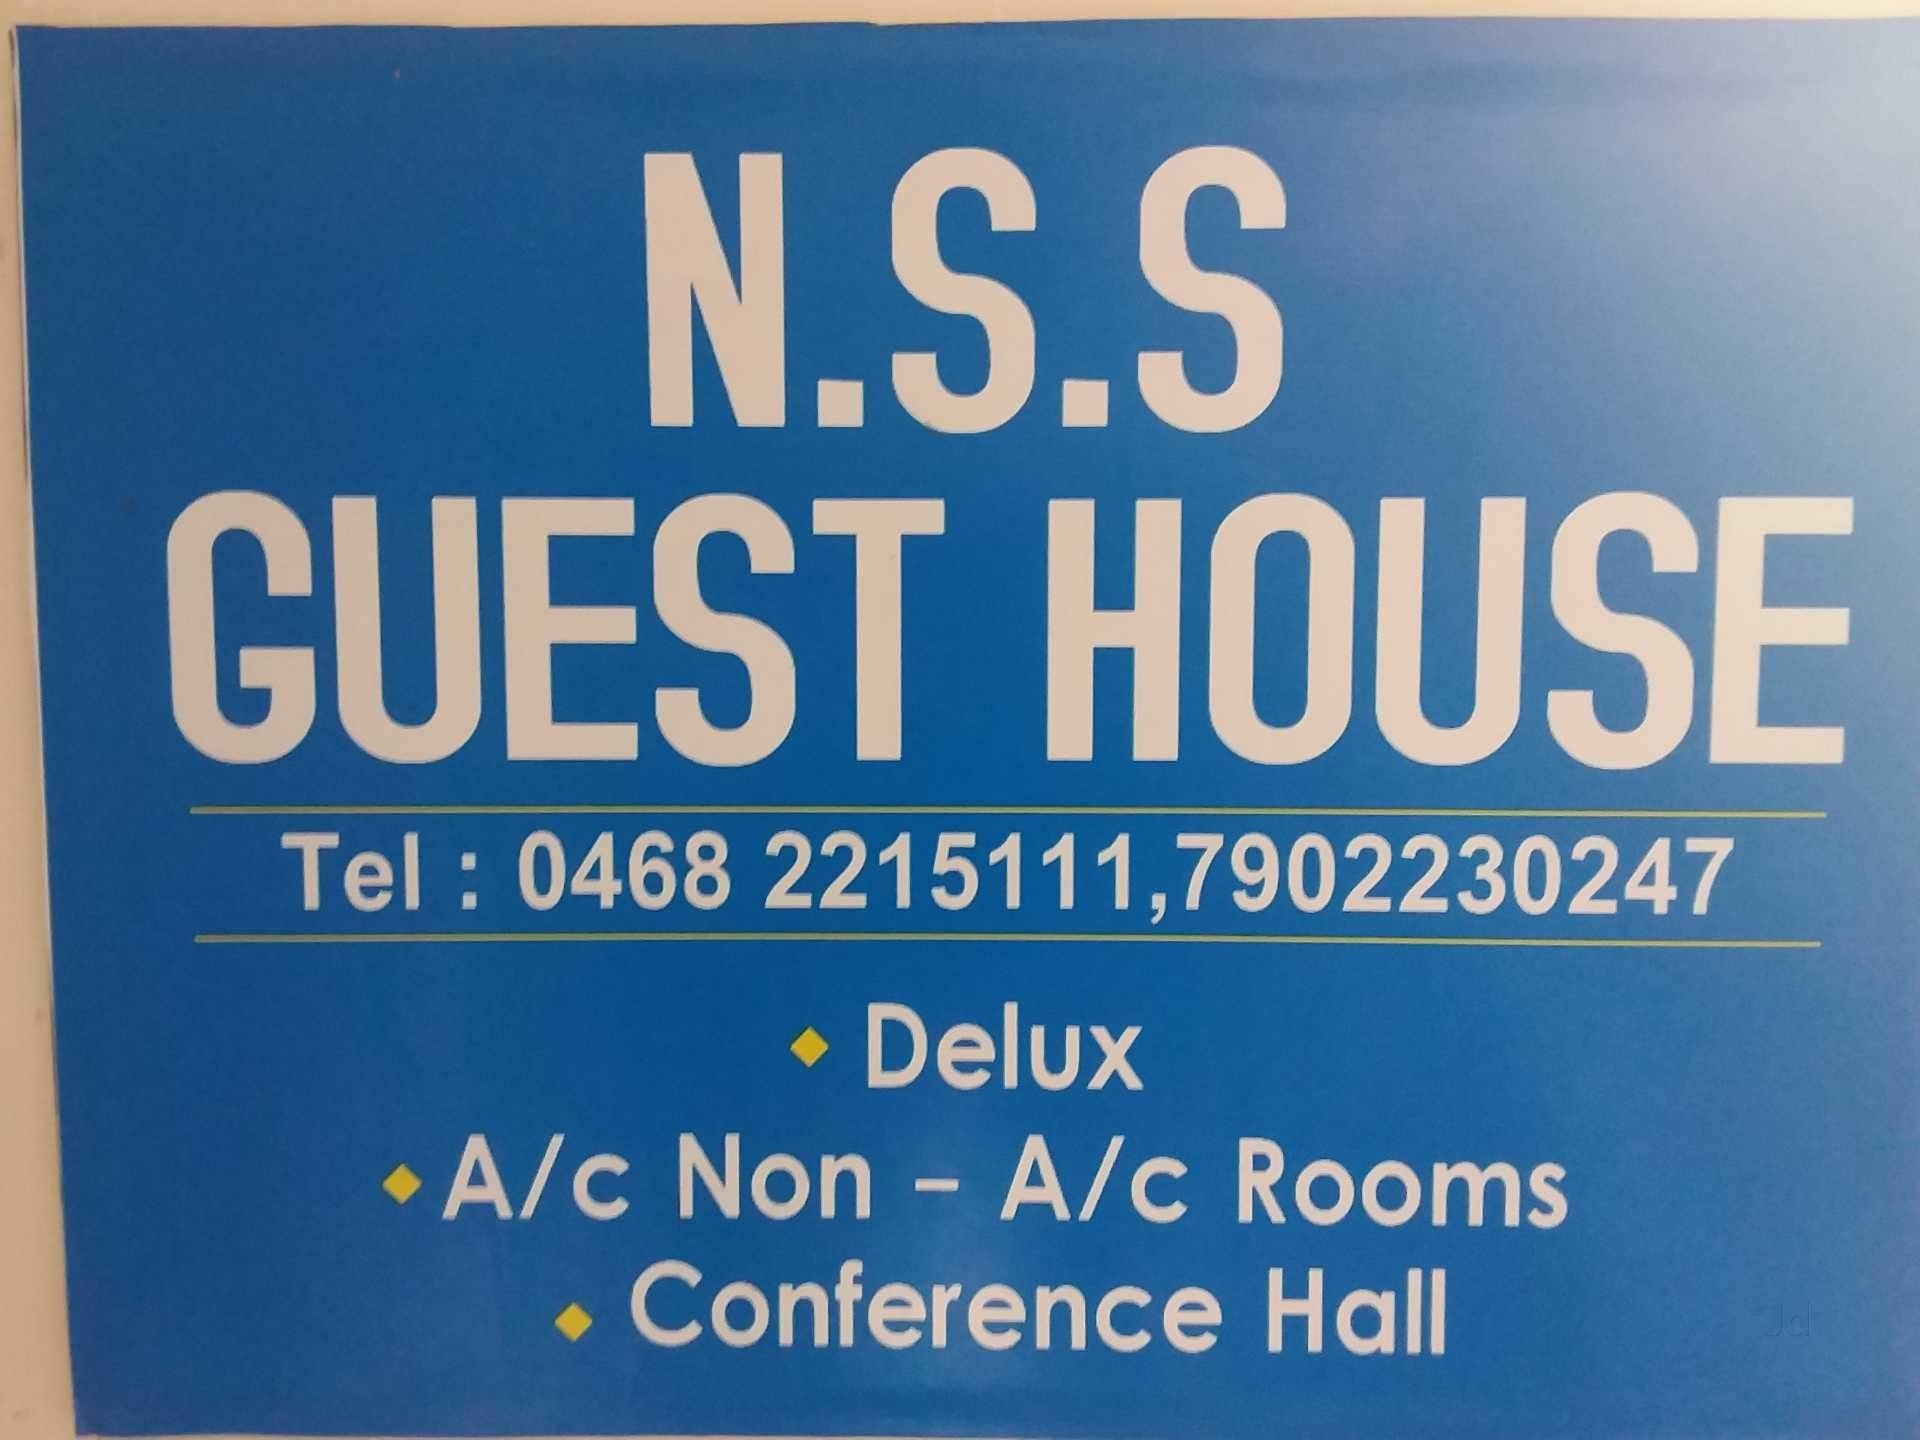 NSS Thaluk Union Guest House, GUEST HOUSE,  service in Aranmula, Pathanamthitta